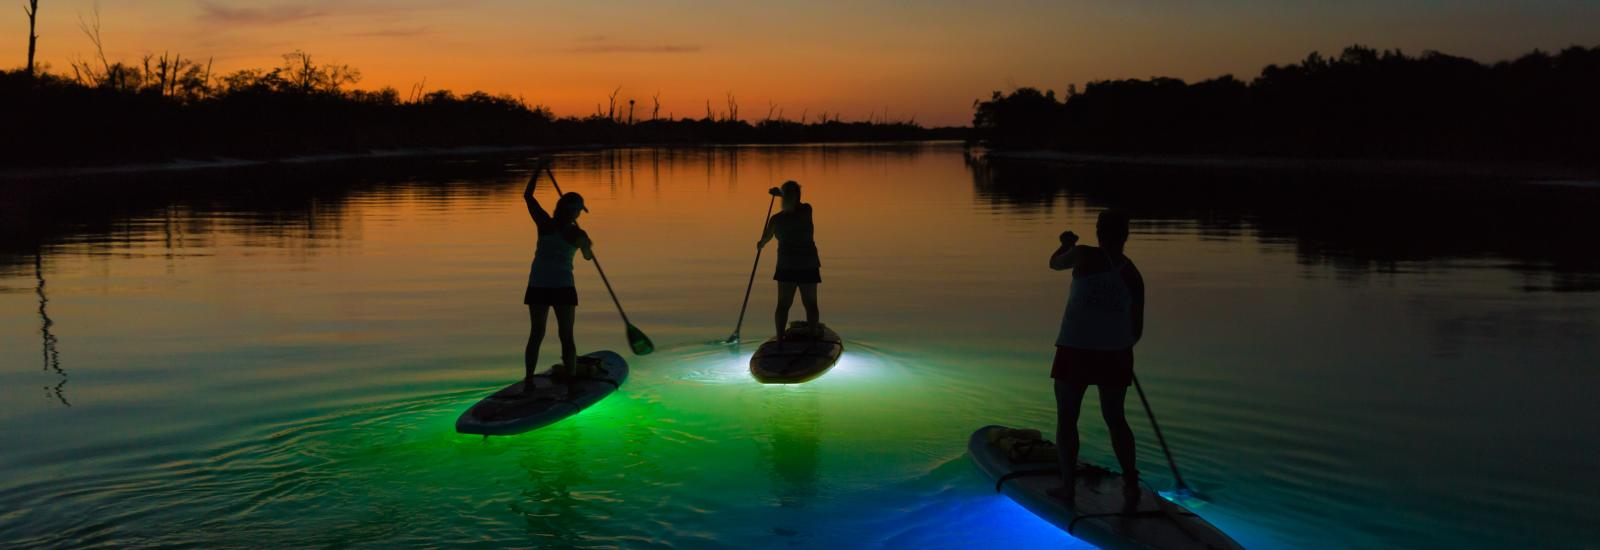 Lighted Night SUP Tour